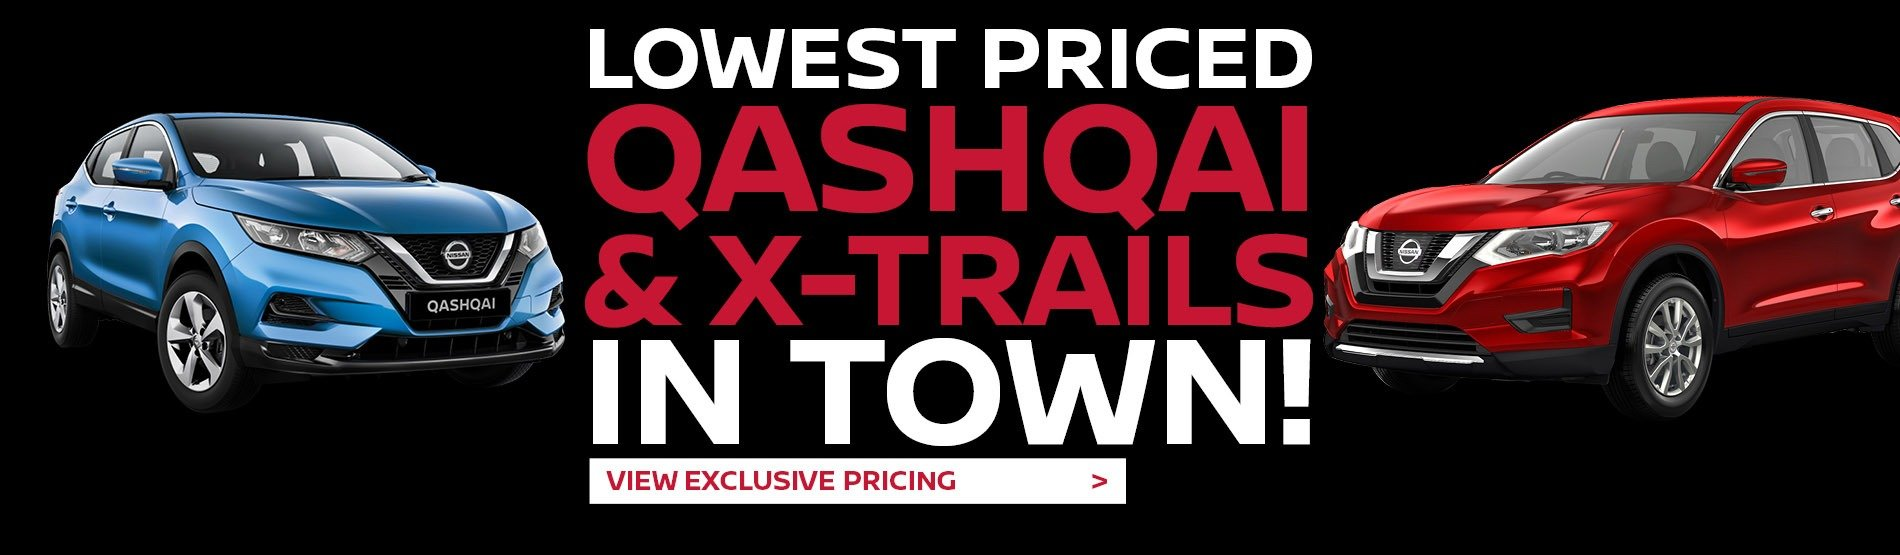 Lowest Price Qashqai and Xtrails